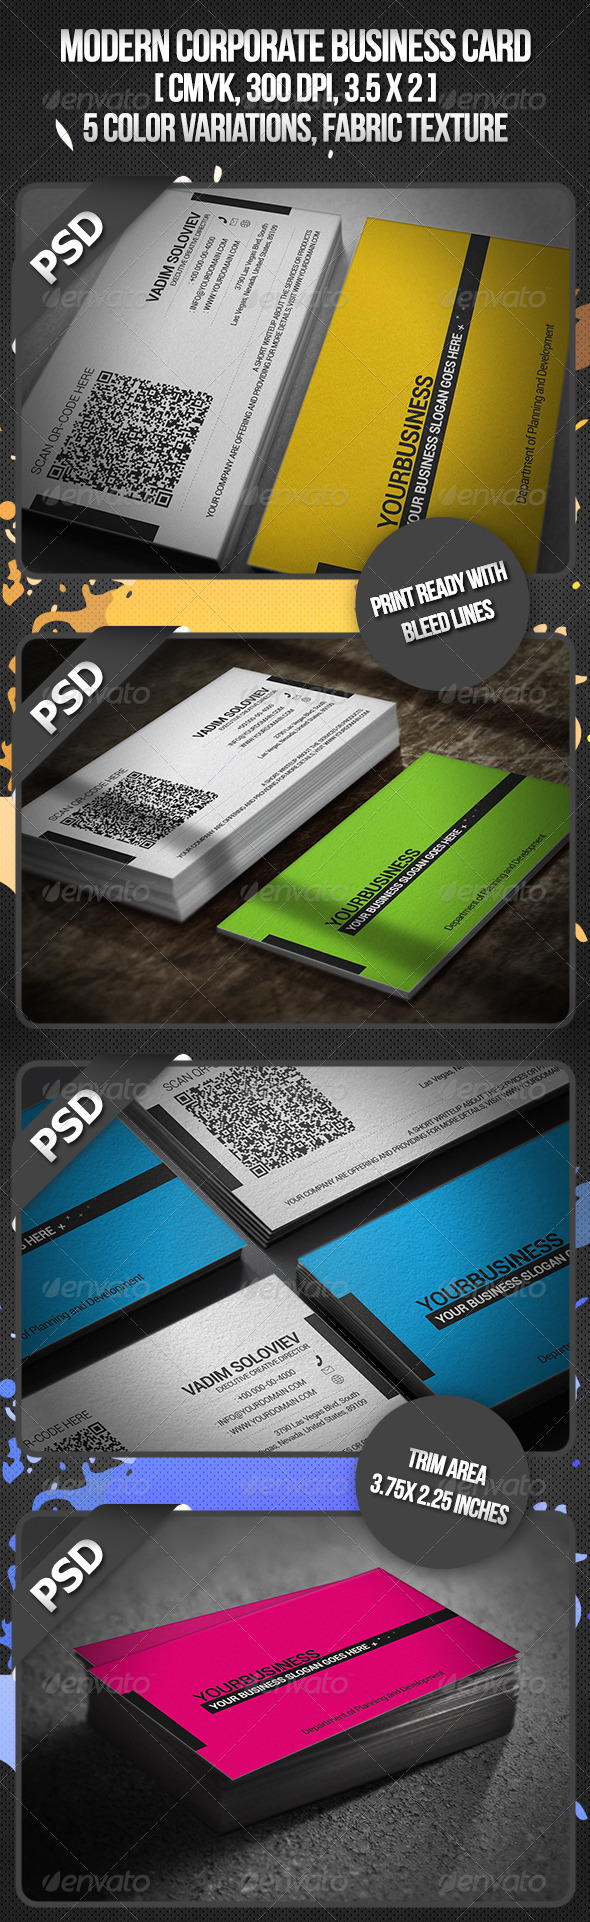 GraphicRiver Modern Corporate Business Card 3071224